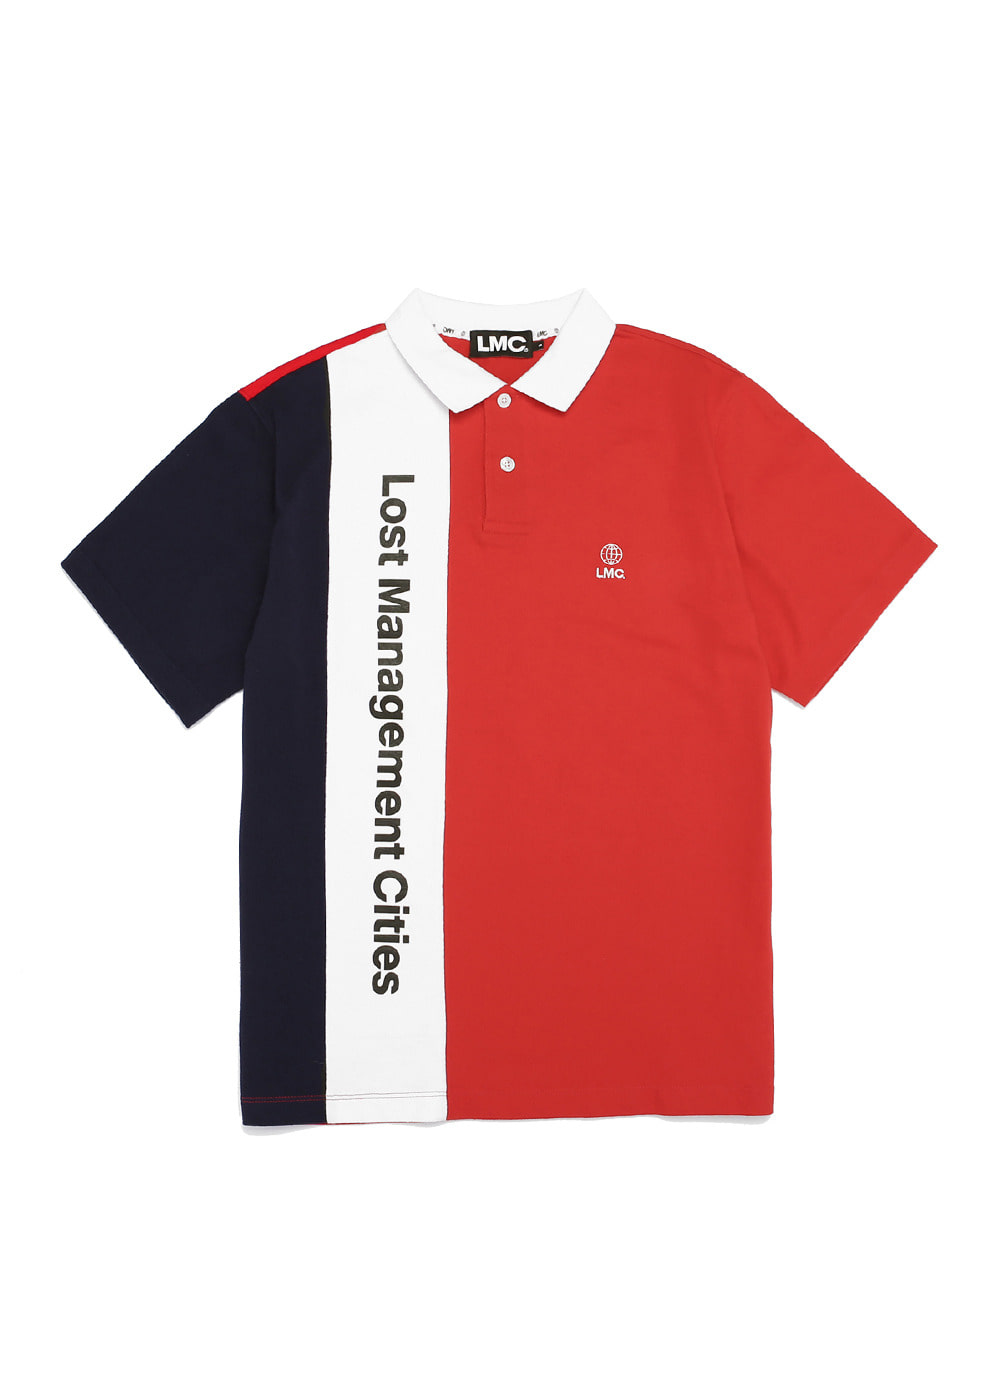 LMC VERTICAL LOGO PK POLO TEE red